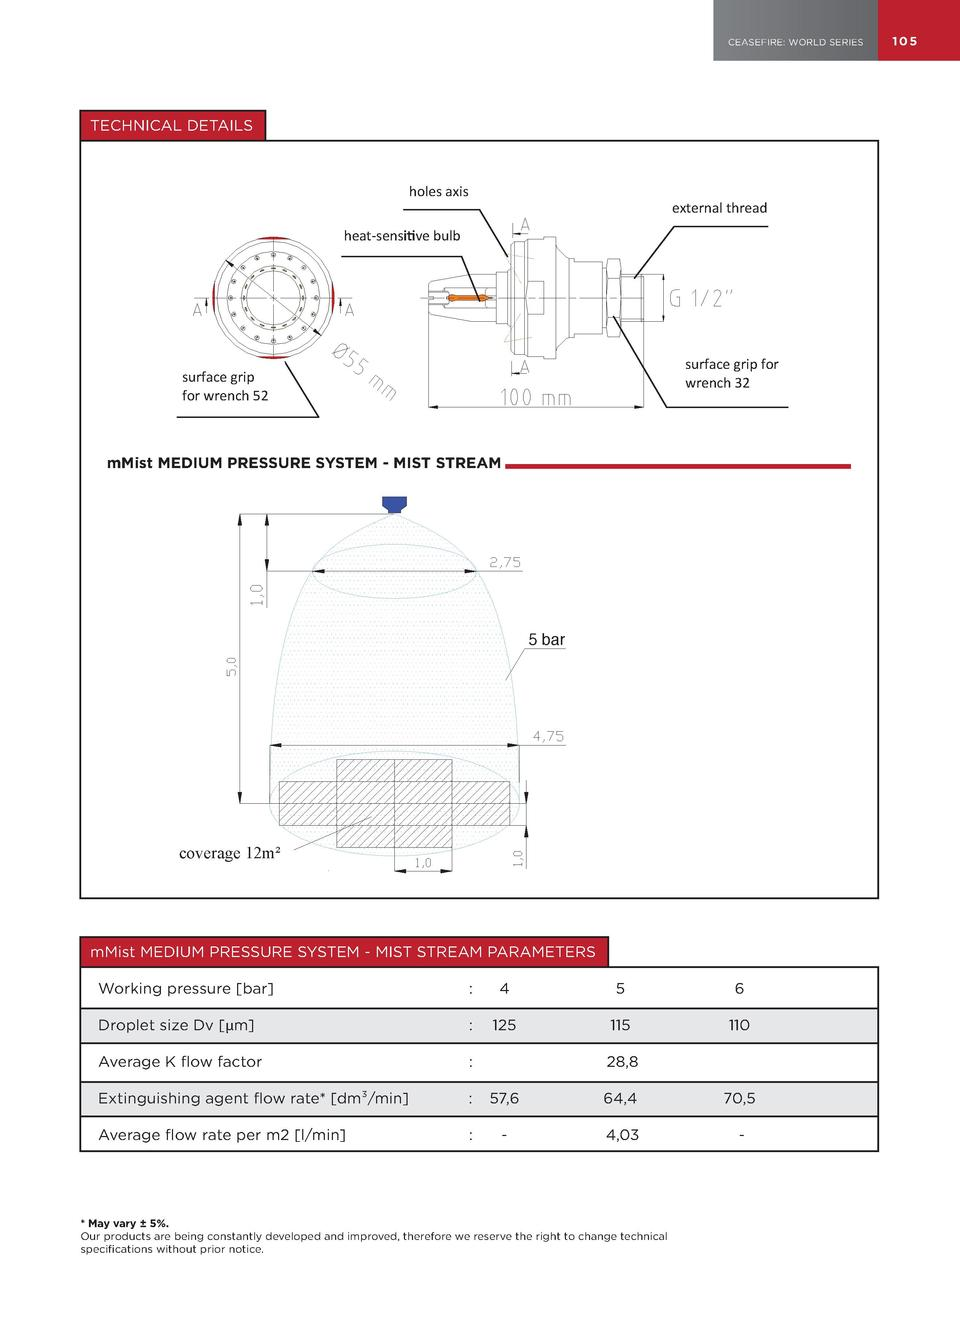 CEASEFIRE  WORLD SERIES  105  TECHNICAL DETAILS  holes axis  external thread  heat-sens ve bulb  surface grip for wrench 3...